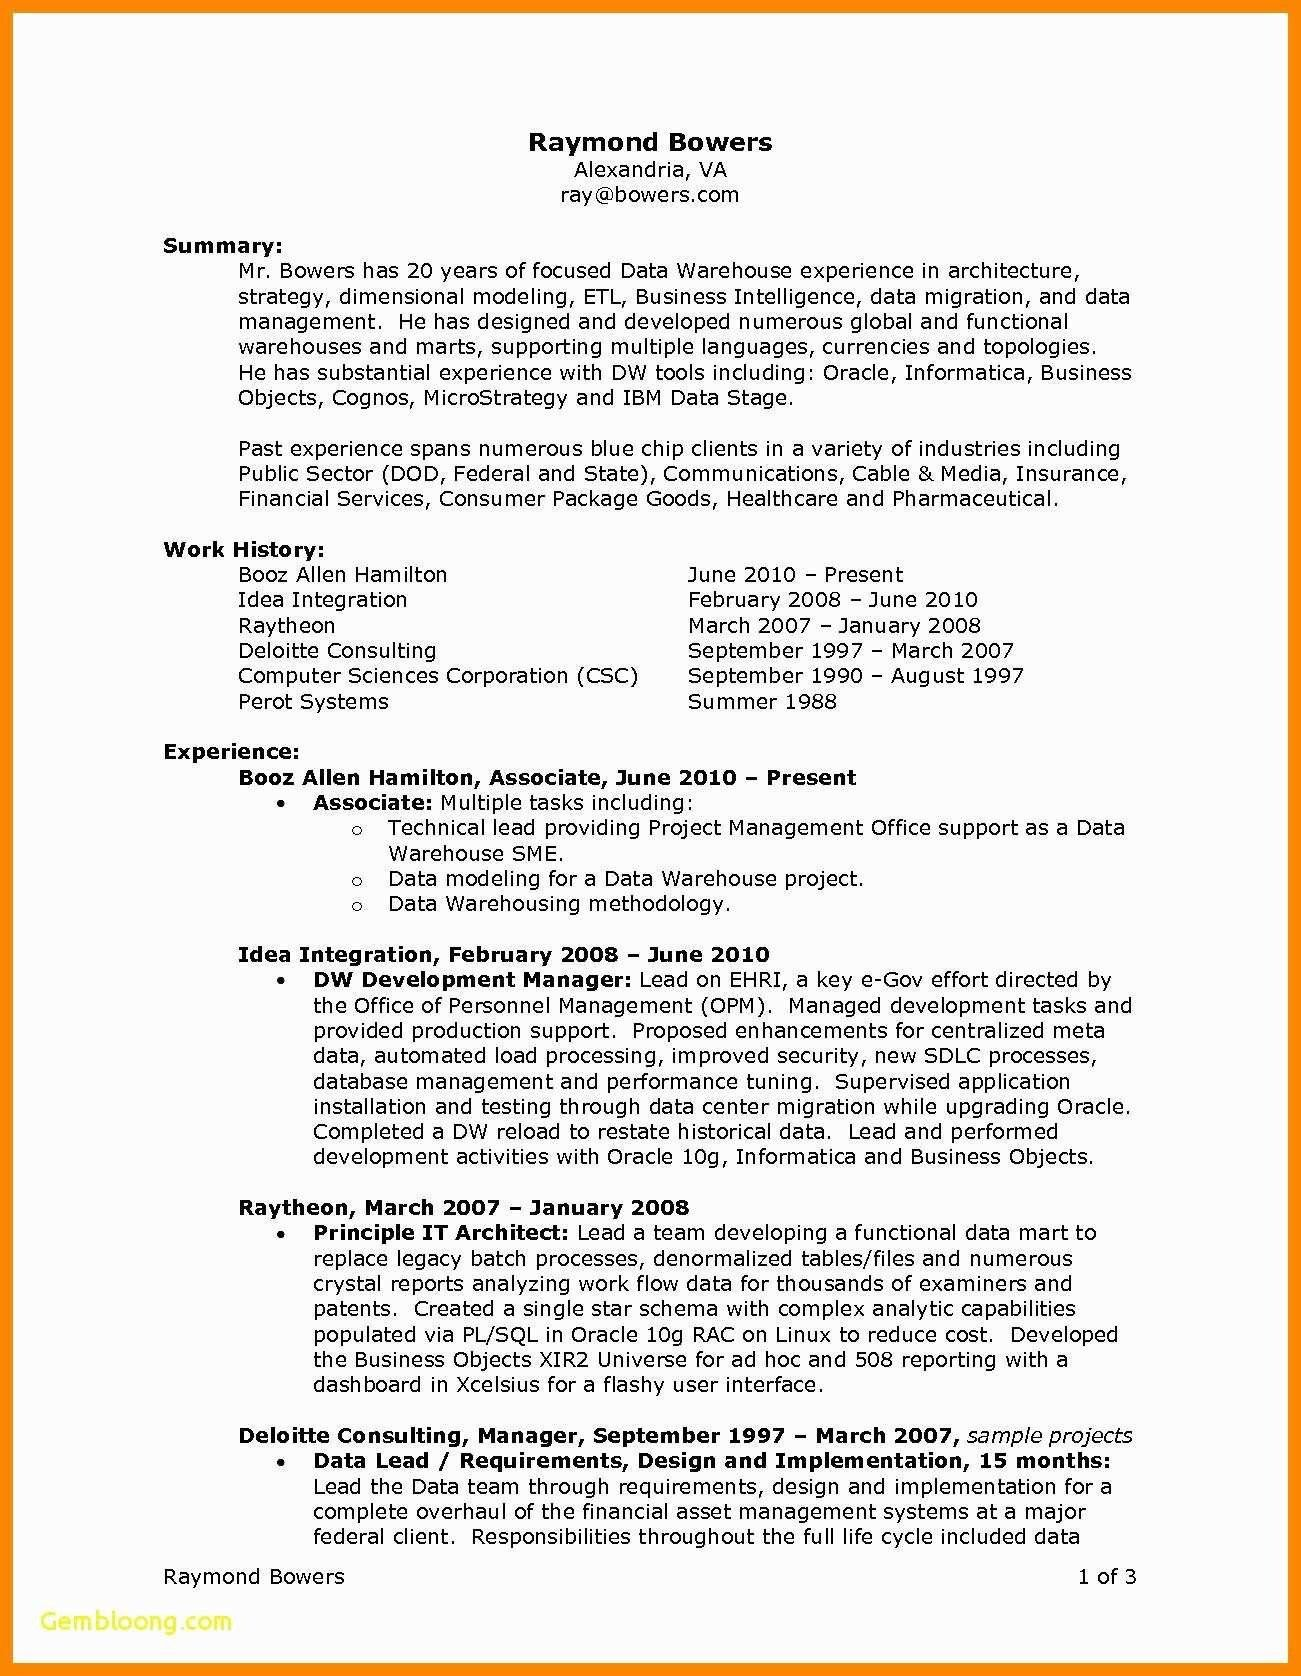 System Admin Resume Example Fresh Examples Healthcare Cover Letters Fresh Admin Cover Business Intelligence Resume Objective Examples Best Resume Template